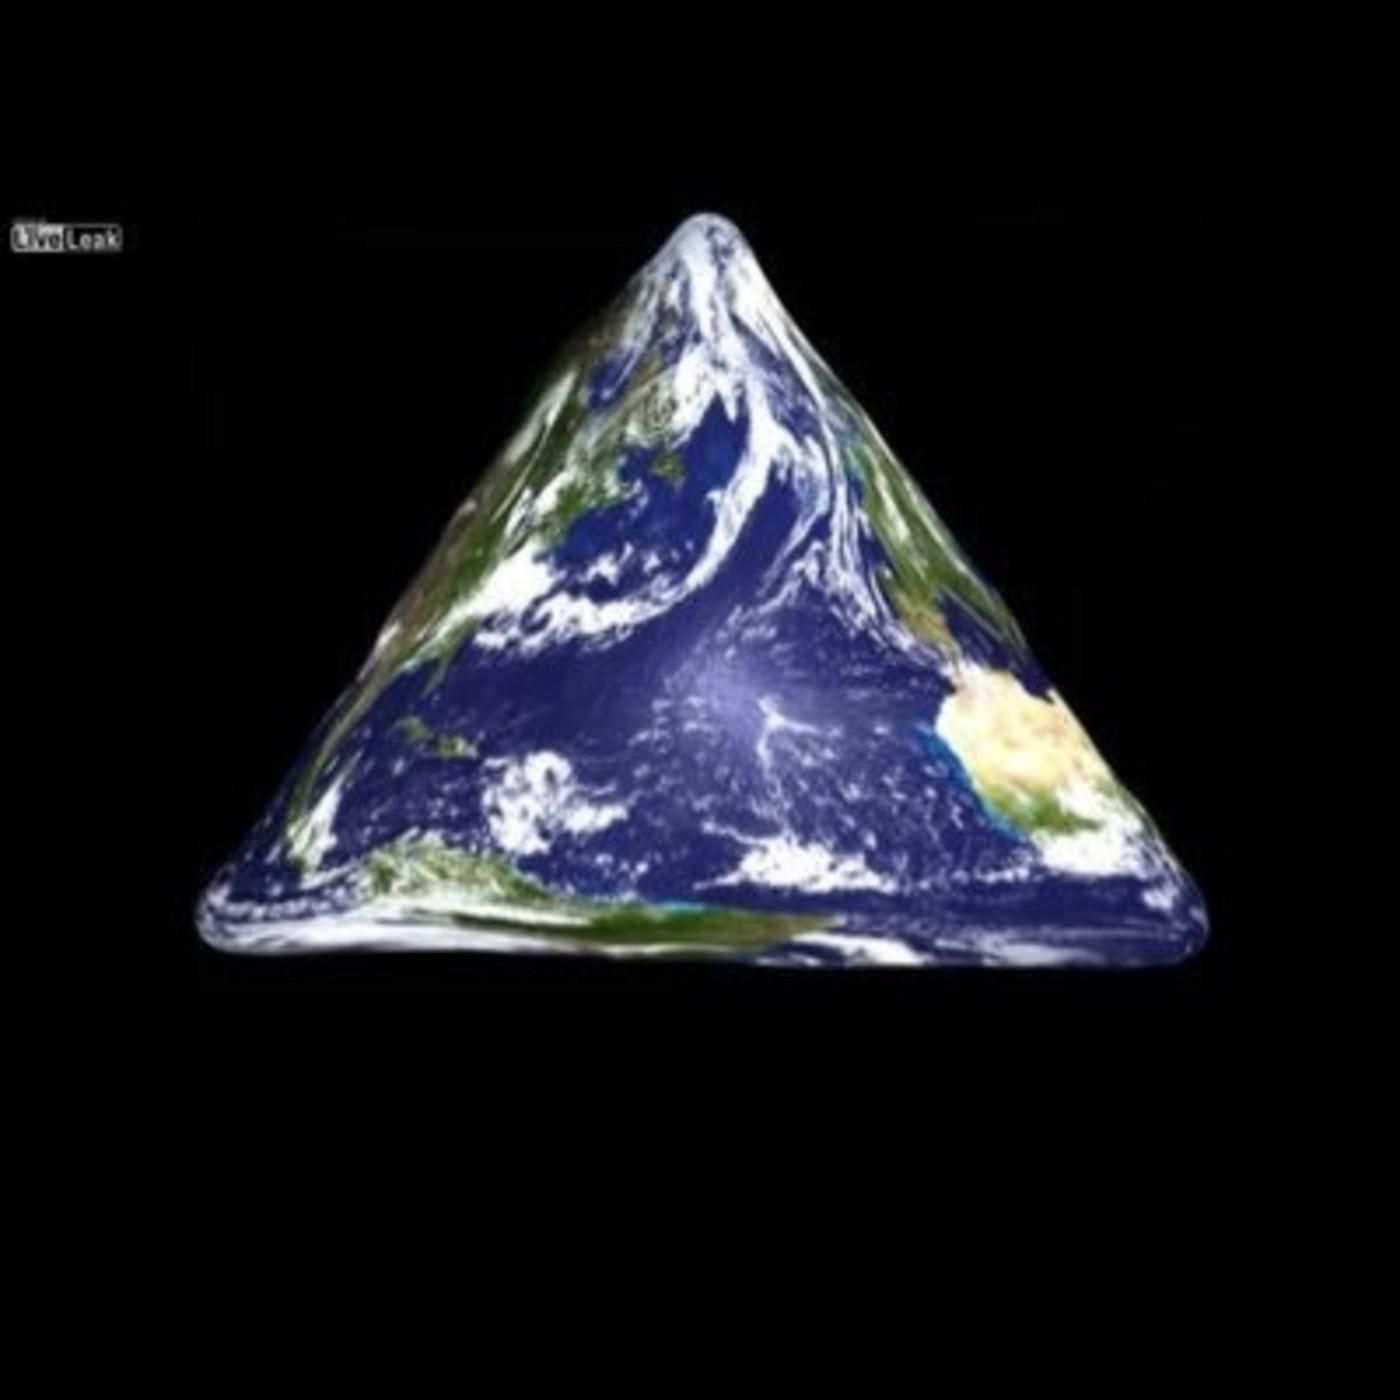 the-earth-is-actually-a-triangle-proof-zIVkMNLlj6o-NUOt9Q1voSy.1400x1400.jpg